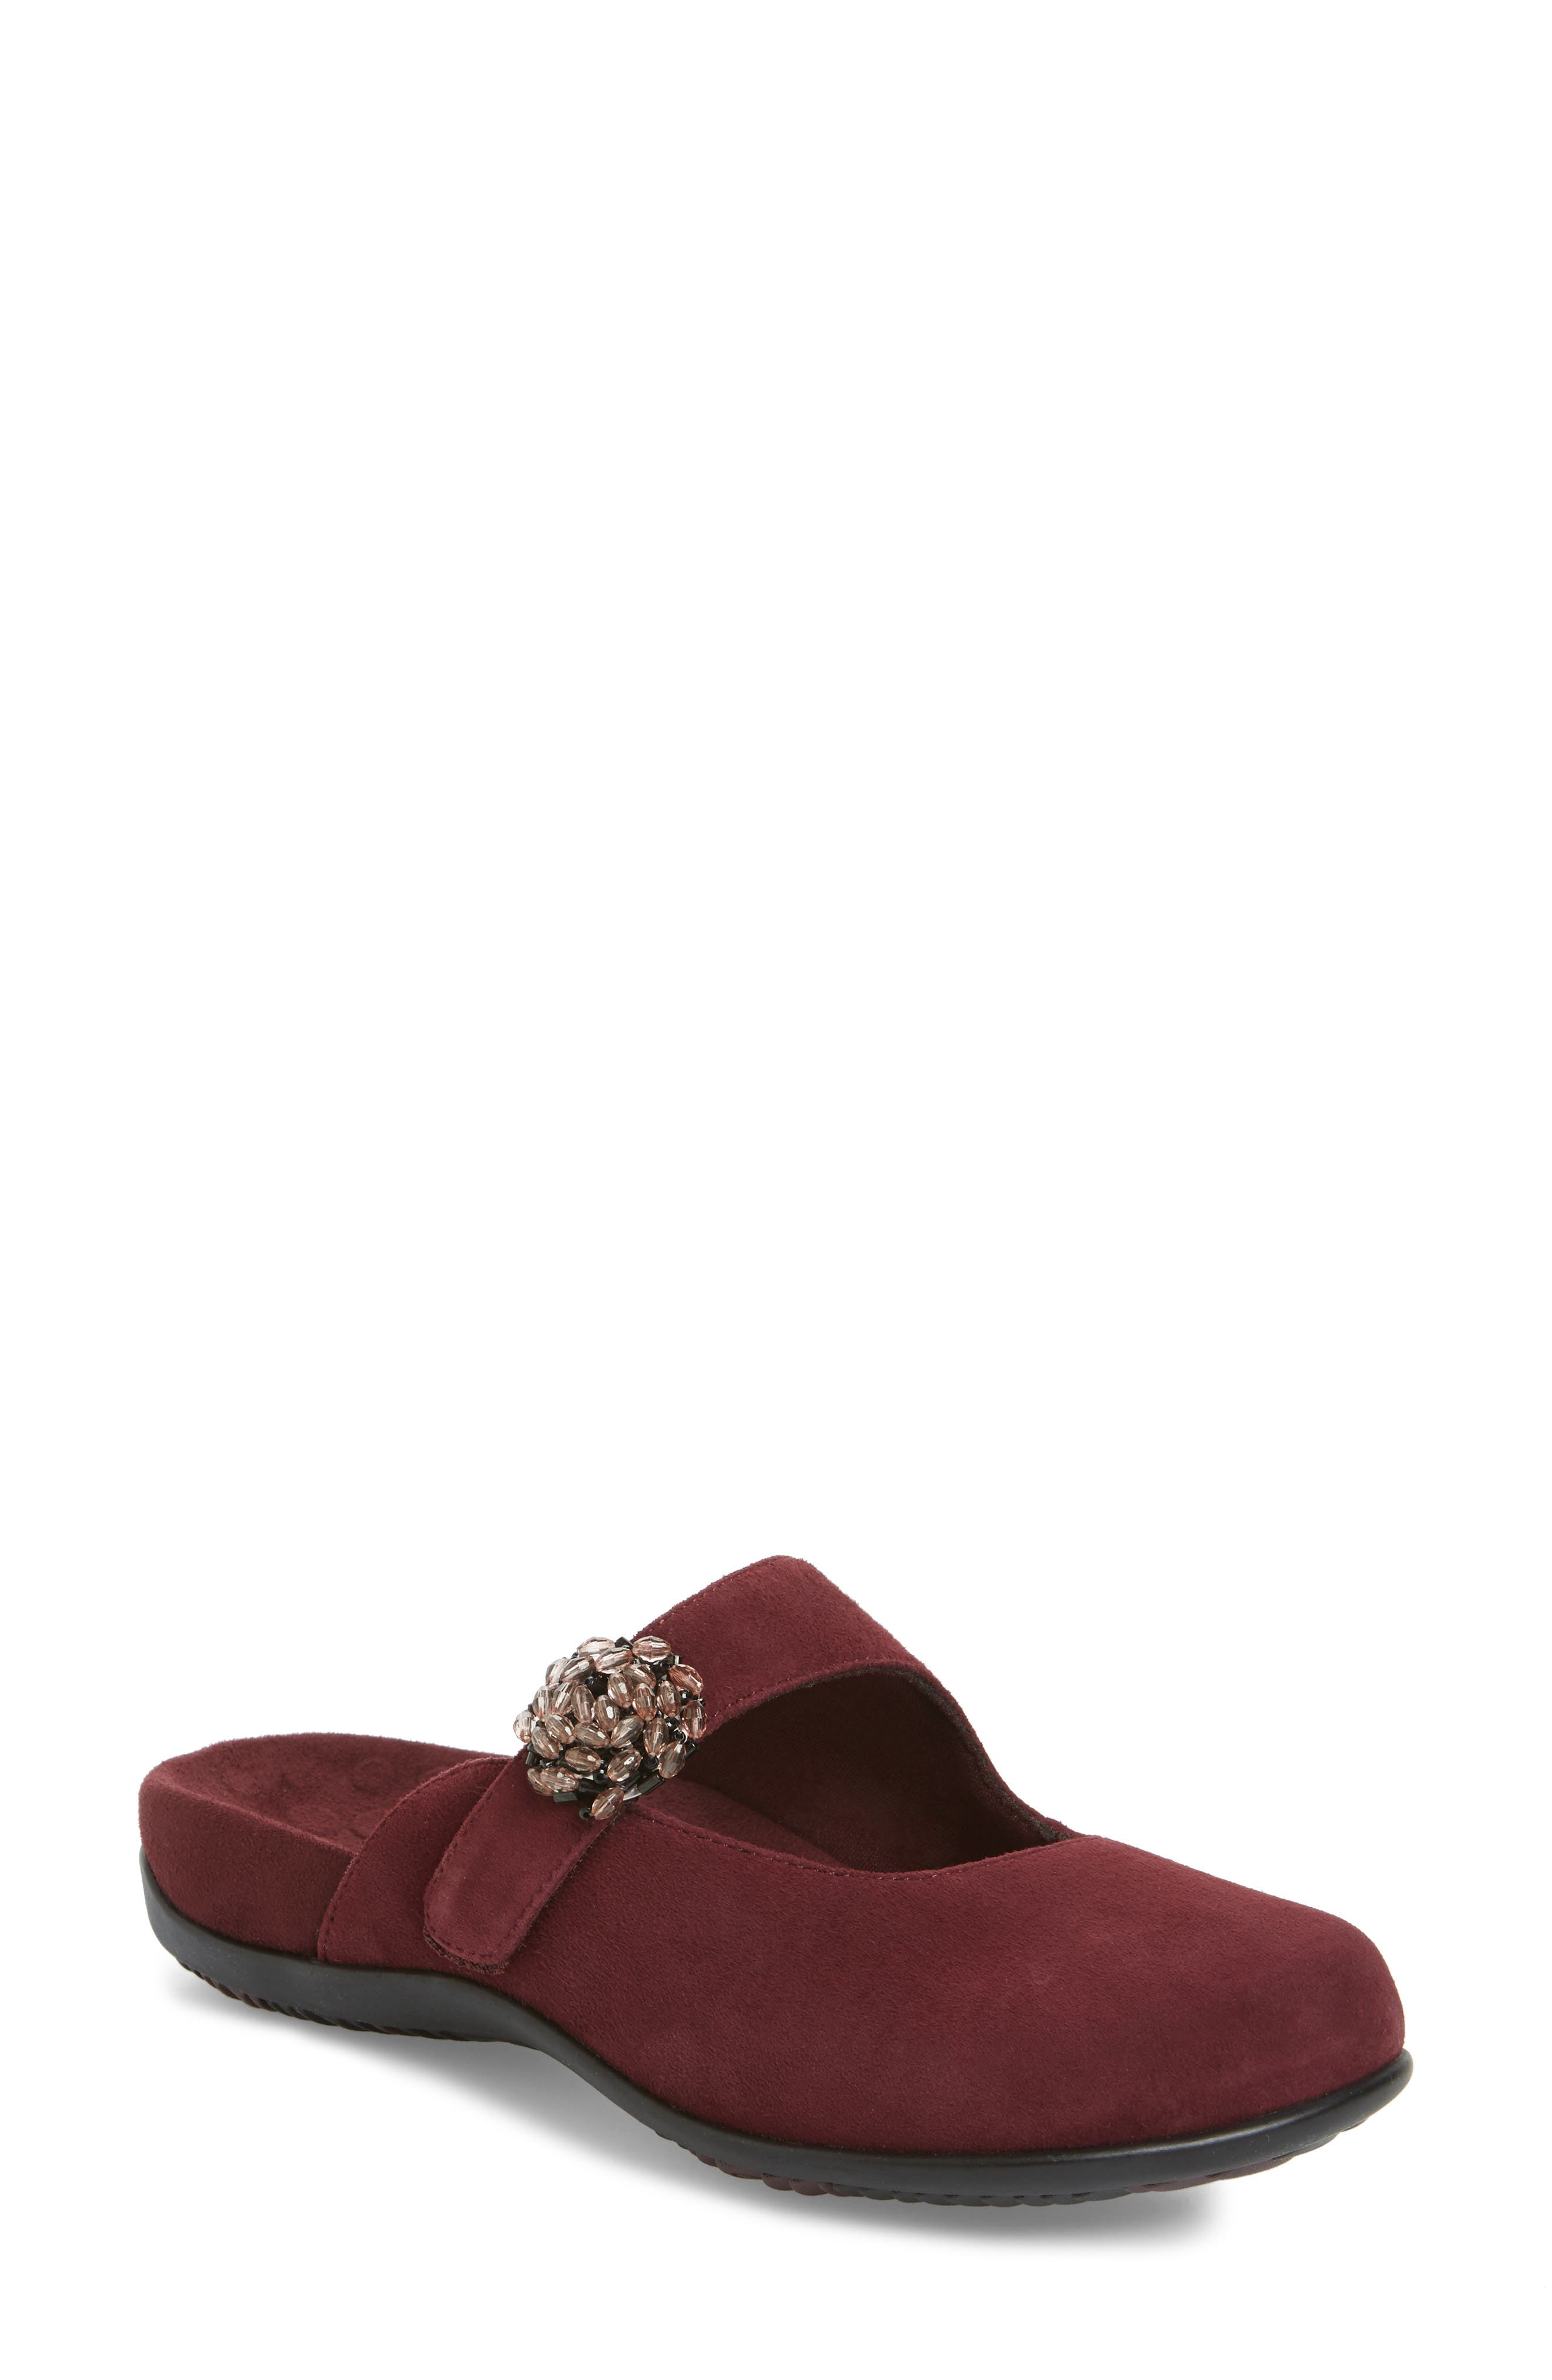 Rest Joan Mary Jane Mule,                         Main,                         color, Merlot Suede